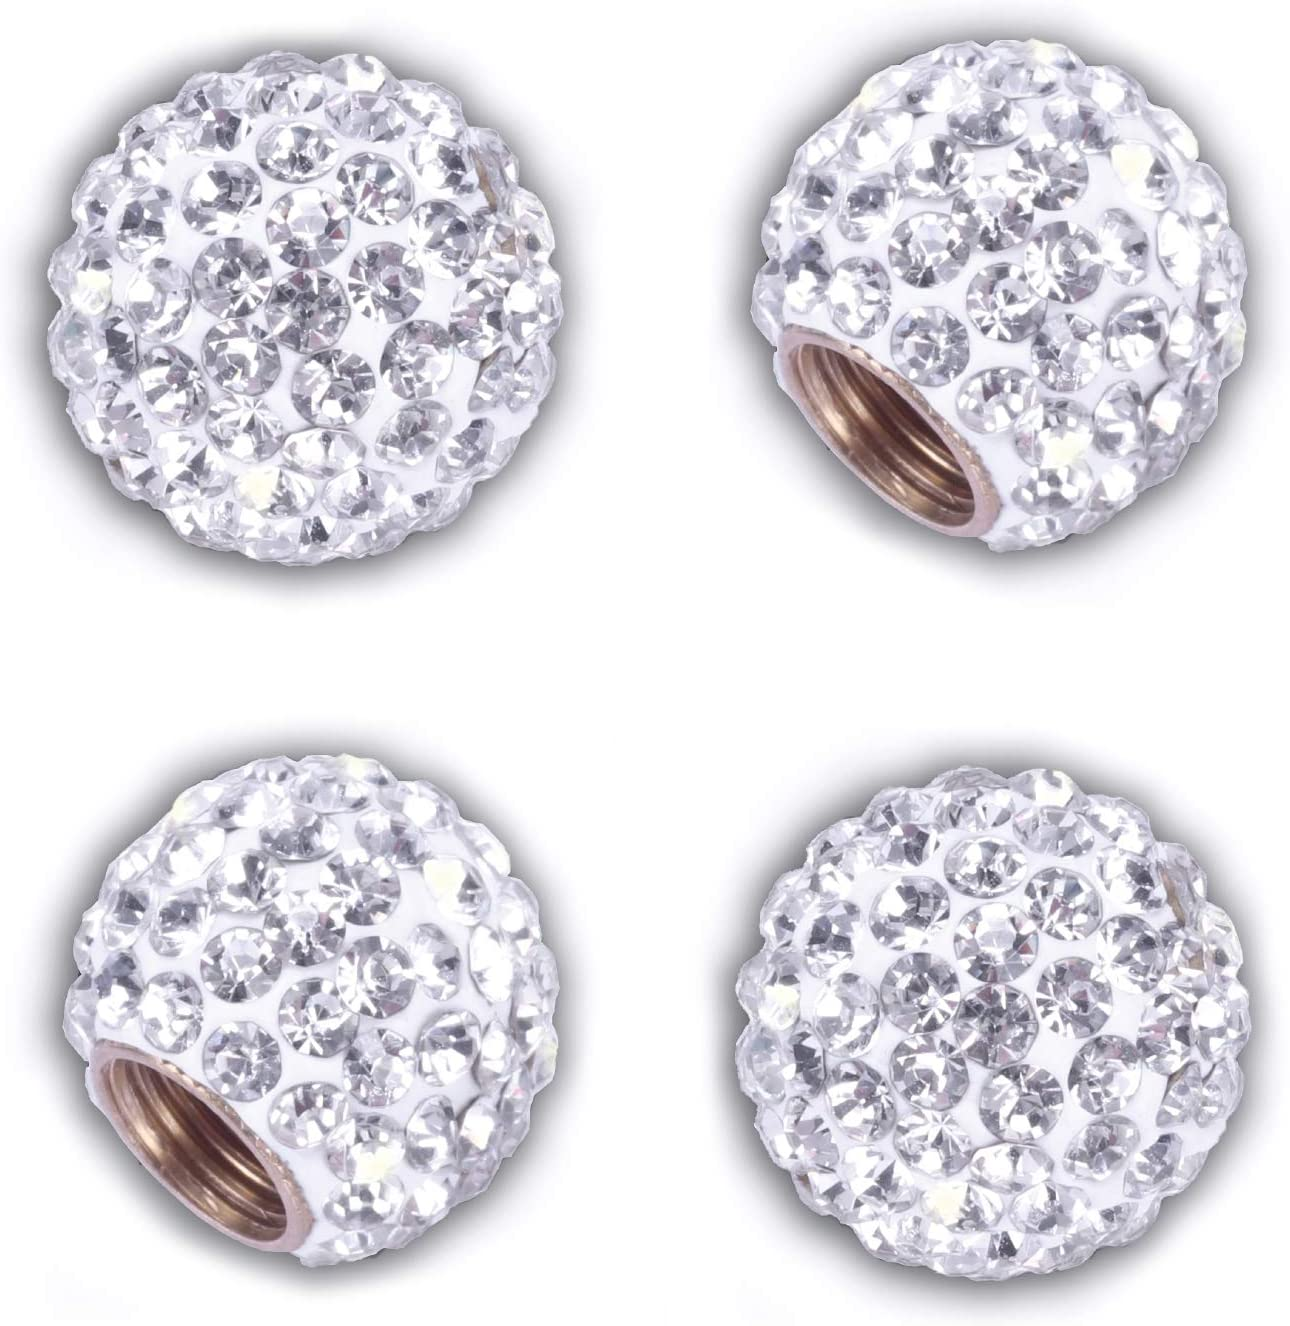 JUSTTOP Car Tire Valve Stem Caps, 4 Pack Handmade Crystal Rhinestone Car Stem Air Caps Cover, Attractive Dustproof Bling Accessories, Universal for Cars, SUVs, Bicycle, Trucks and Motorcycles-White